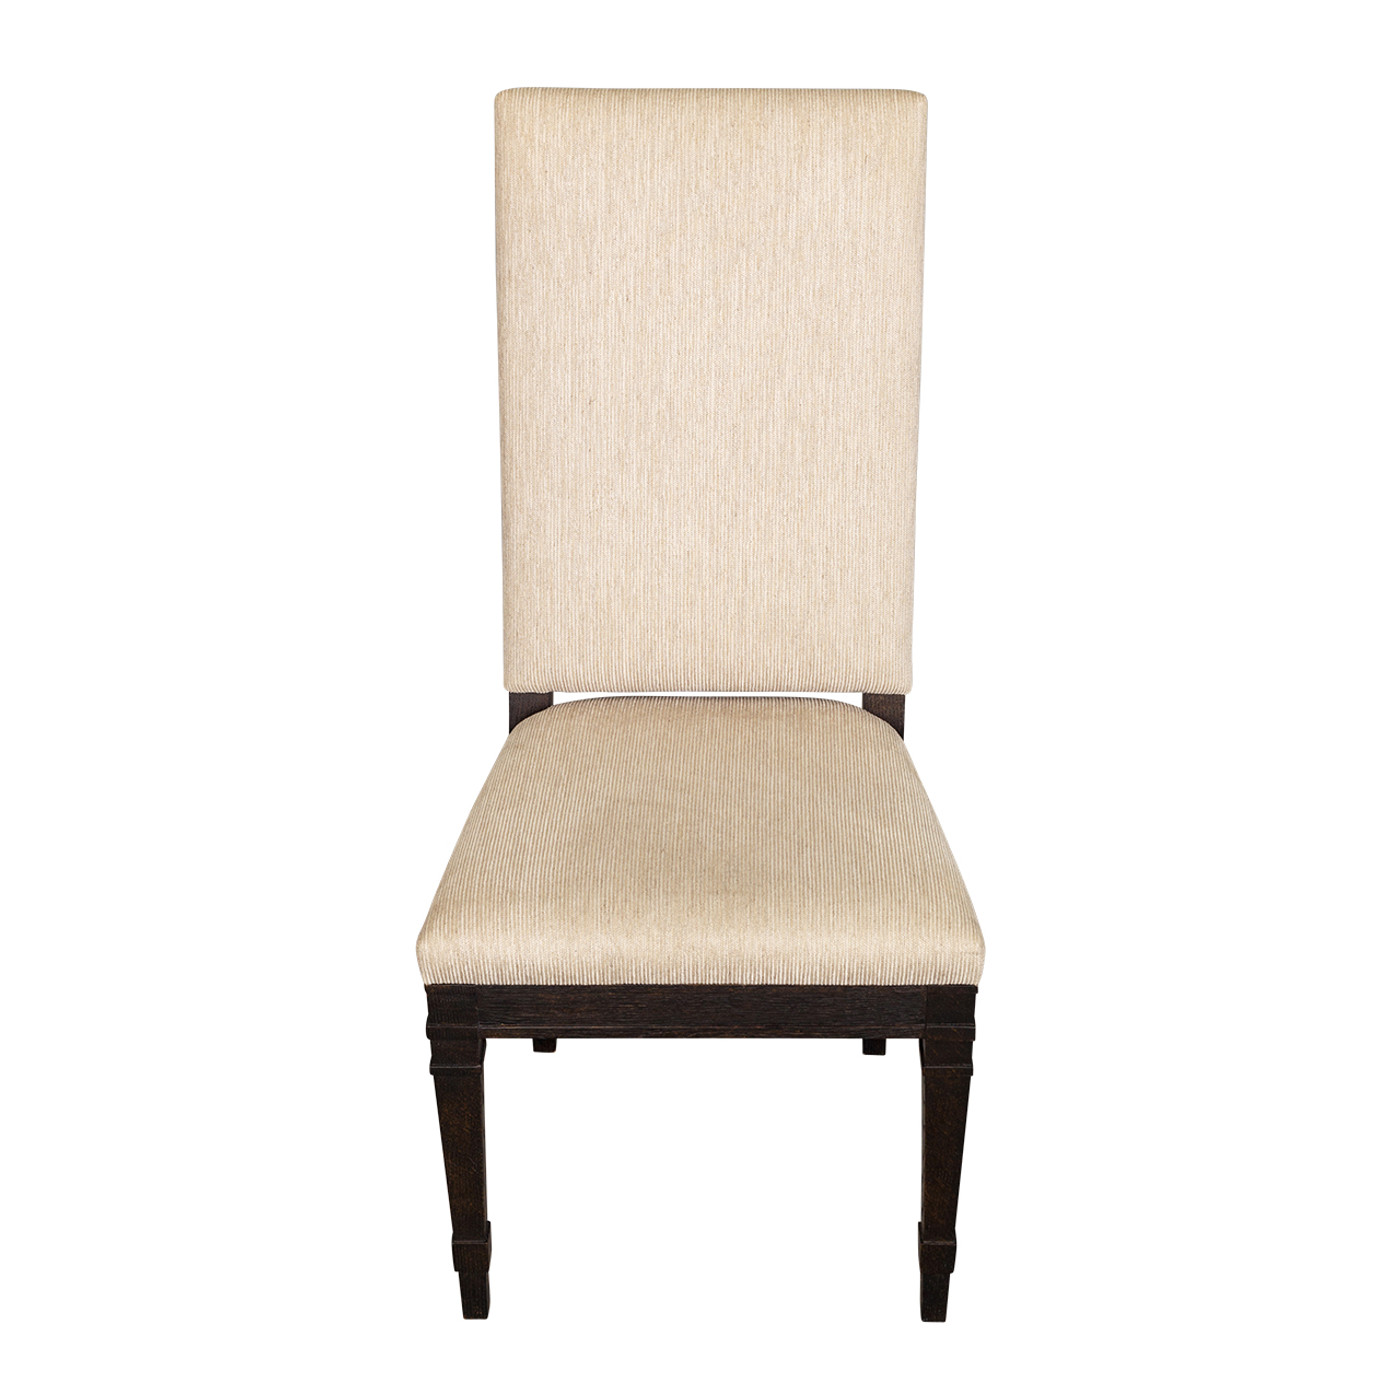 Ashton Chair #1